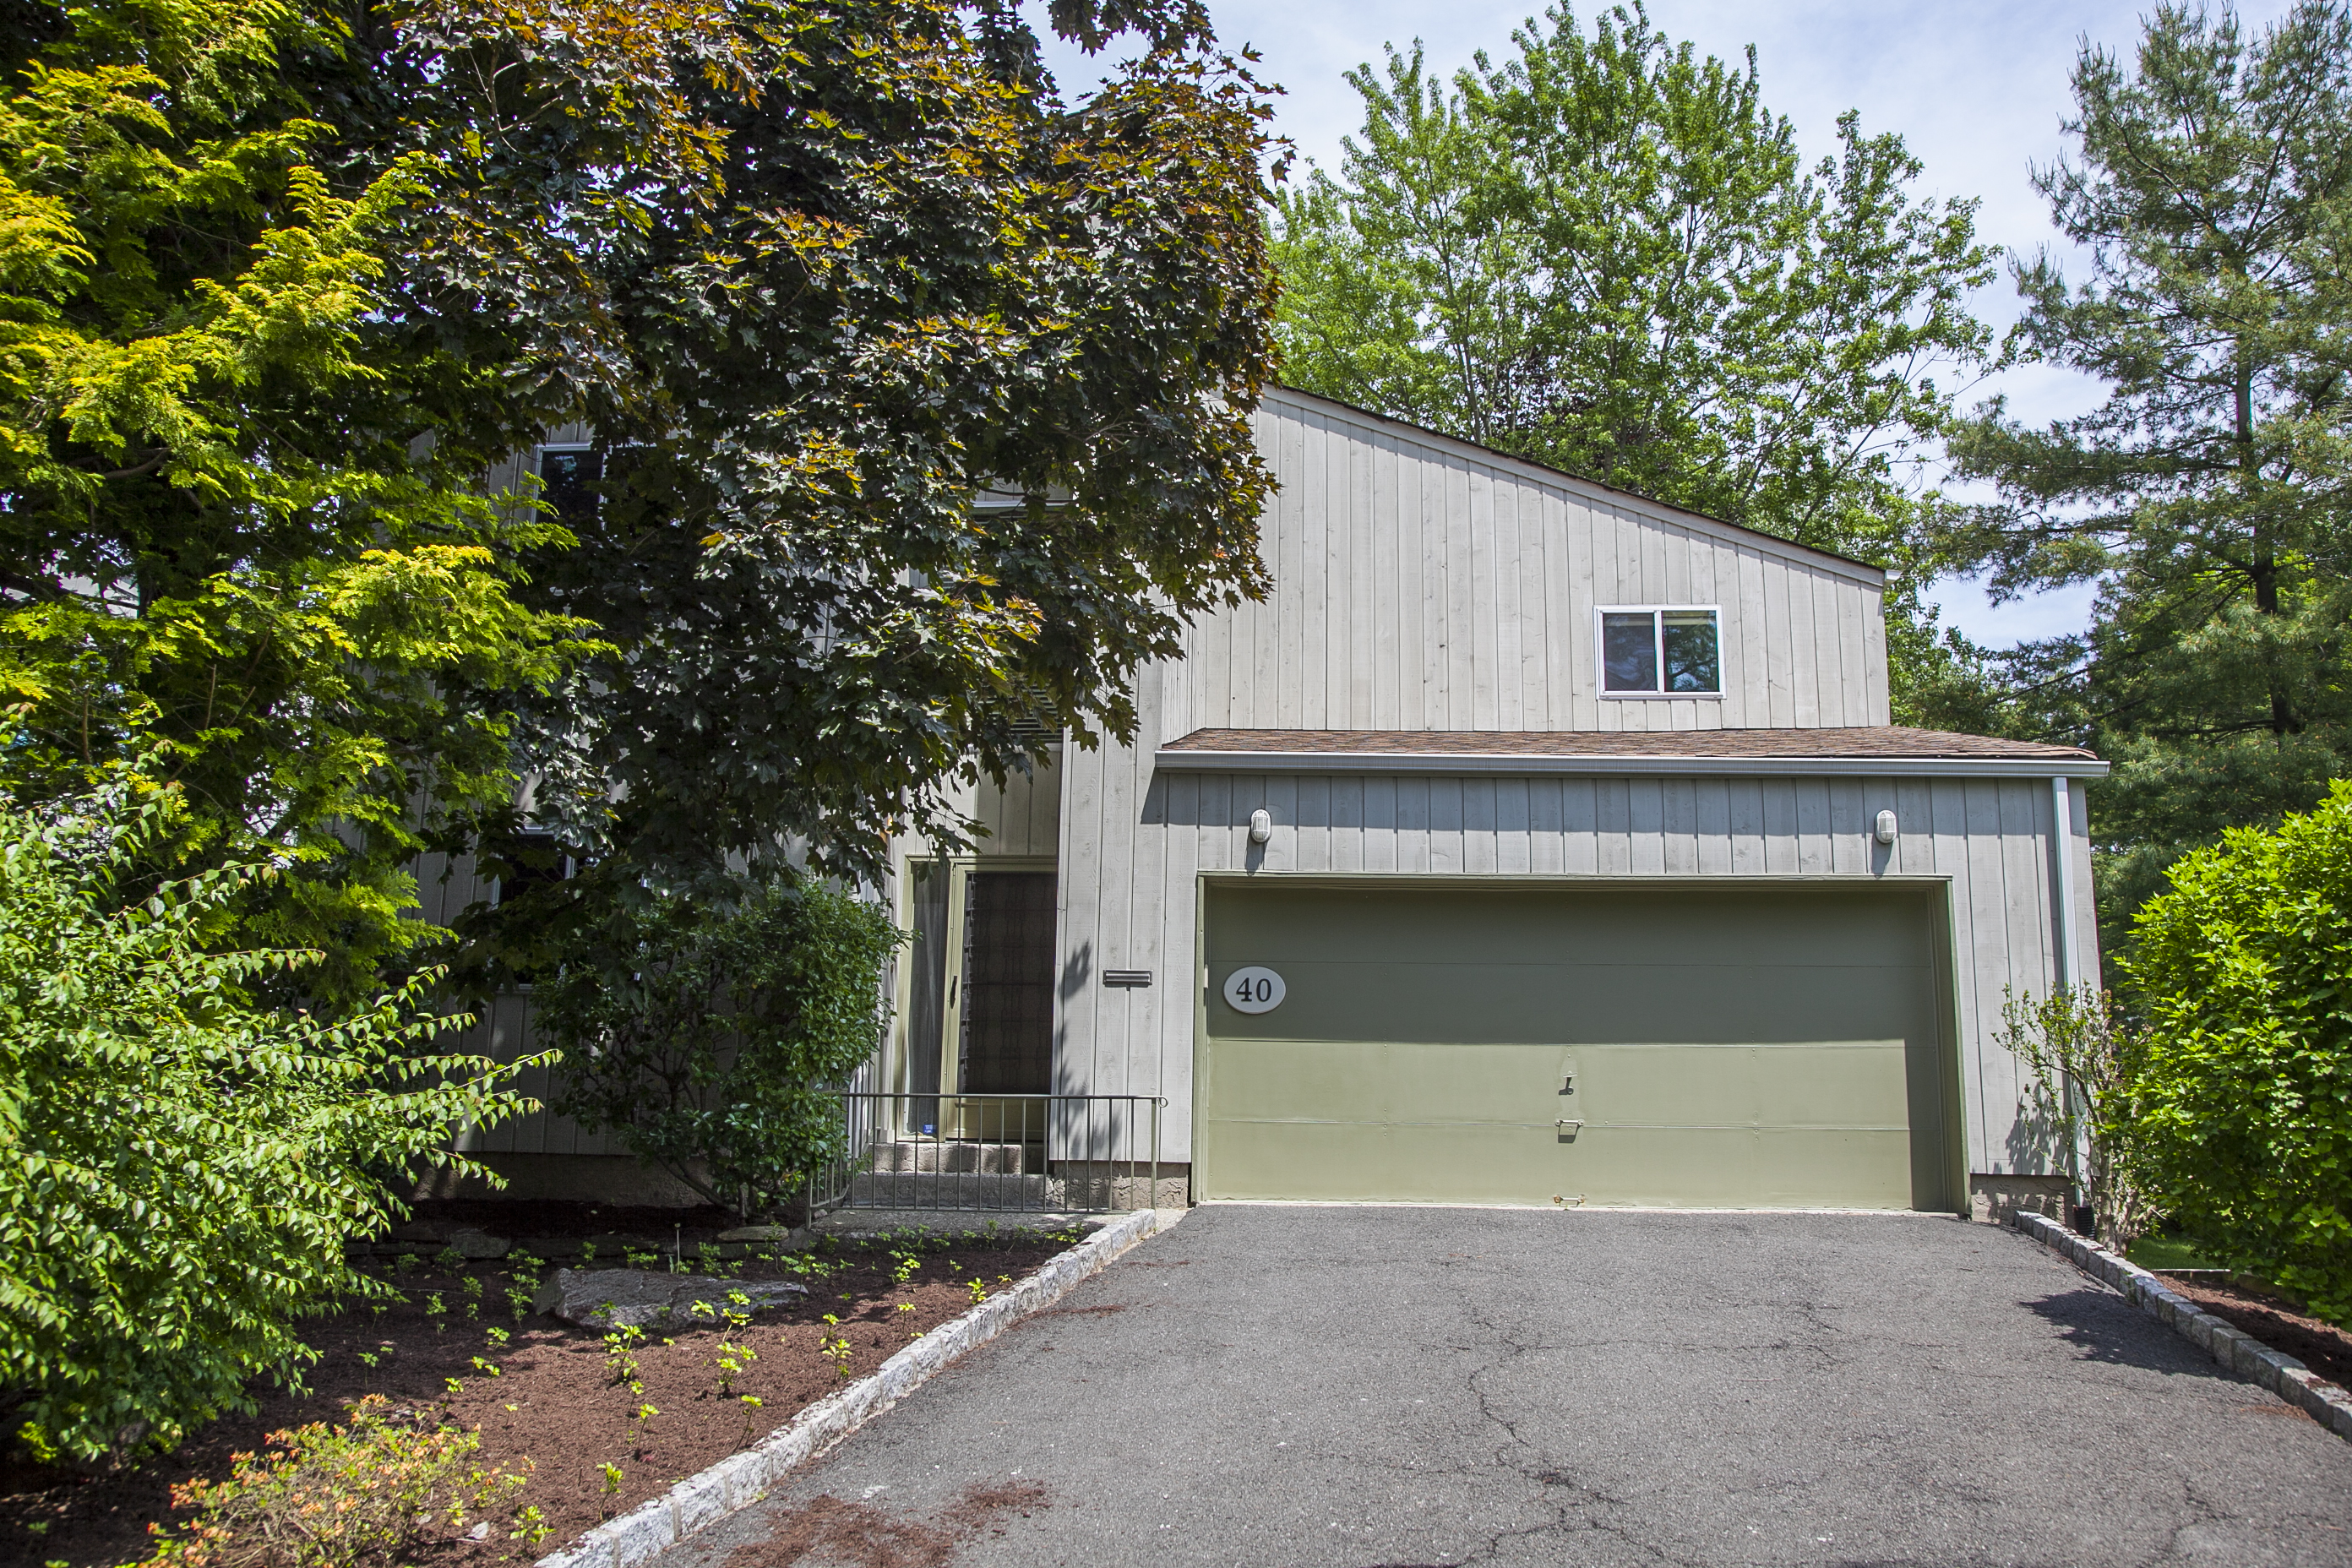 Single Family Home for Sale at 40 Talcott Road Rye Brook, New York, 10573 United States